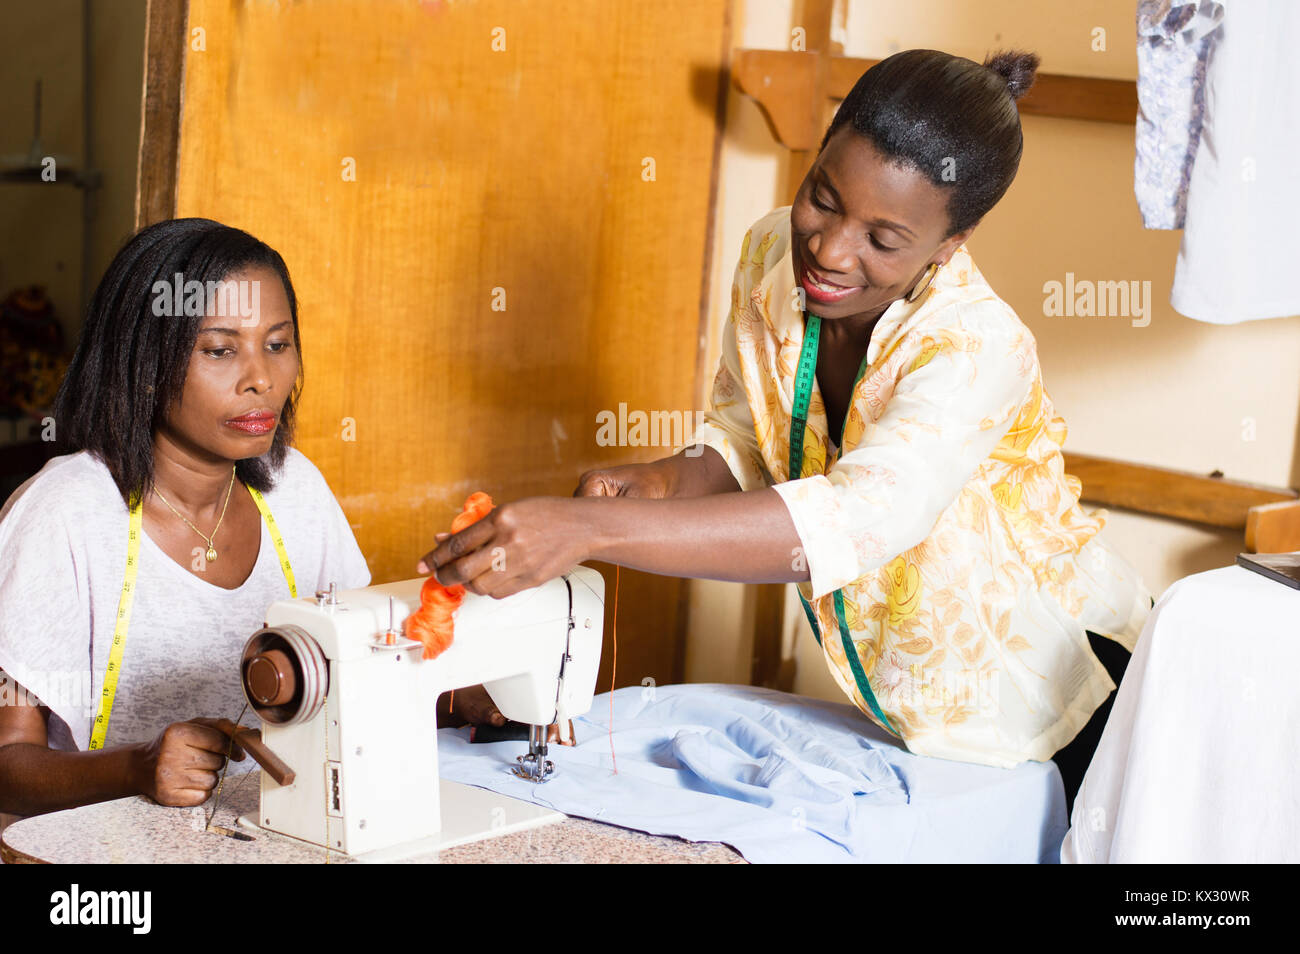 Sewing teacher shows her student how to place a roll of yarn on a sewing machine - Stock Image